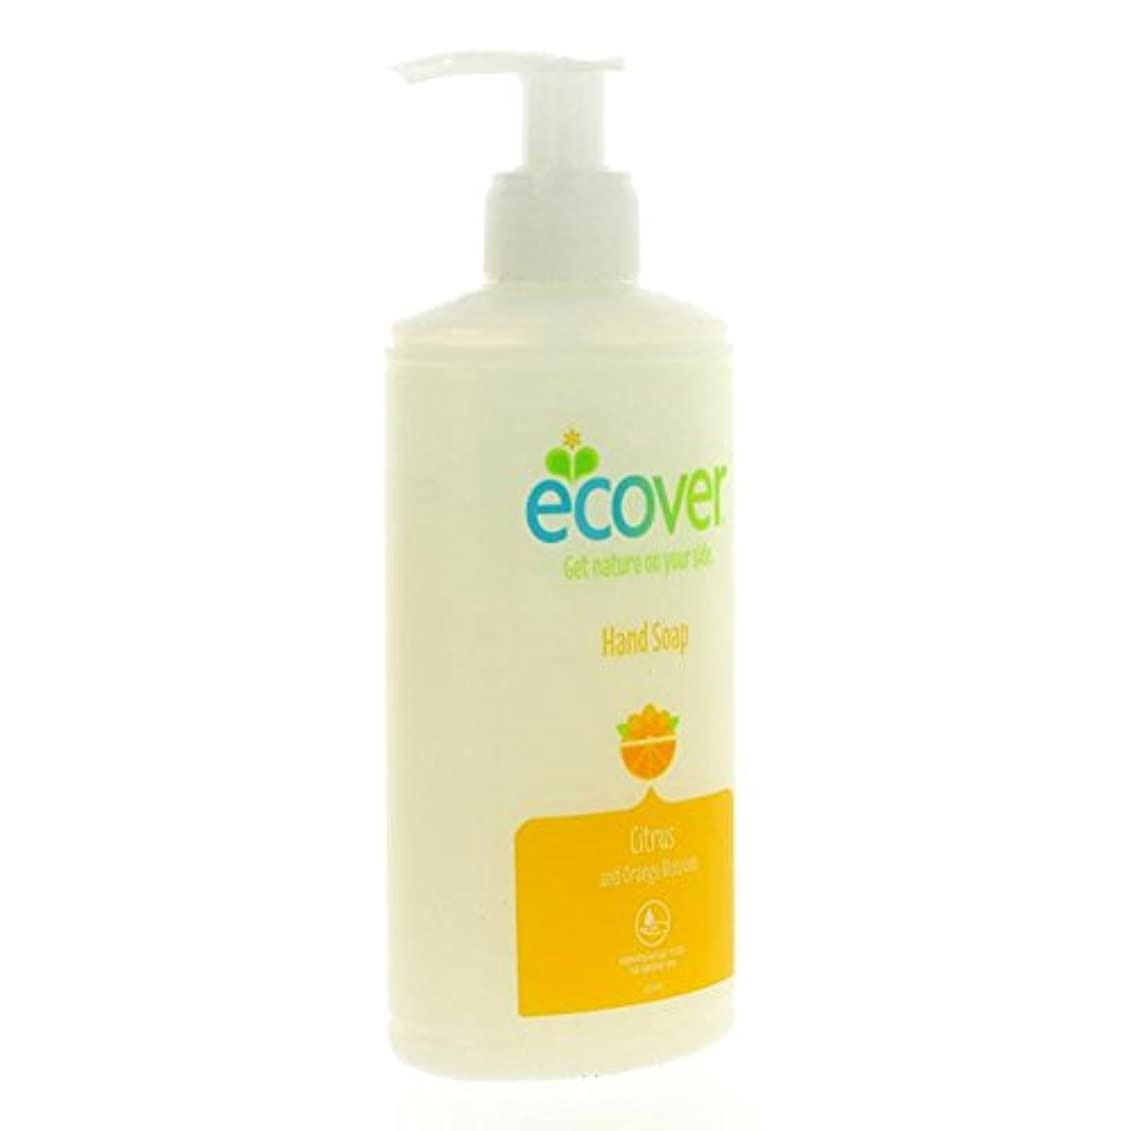 ピースオンスラジエーターEcover - Hand Soap - Citrus and Orange Blossom - 250ml (Case of 6)